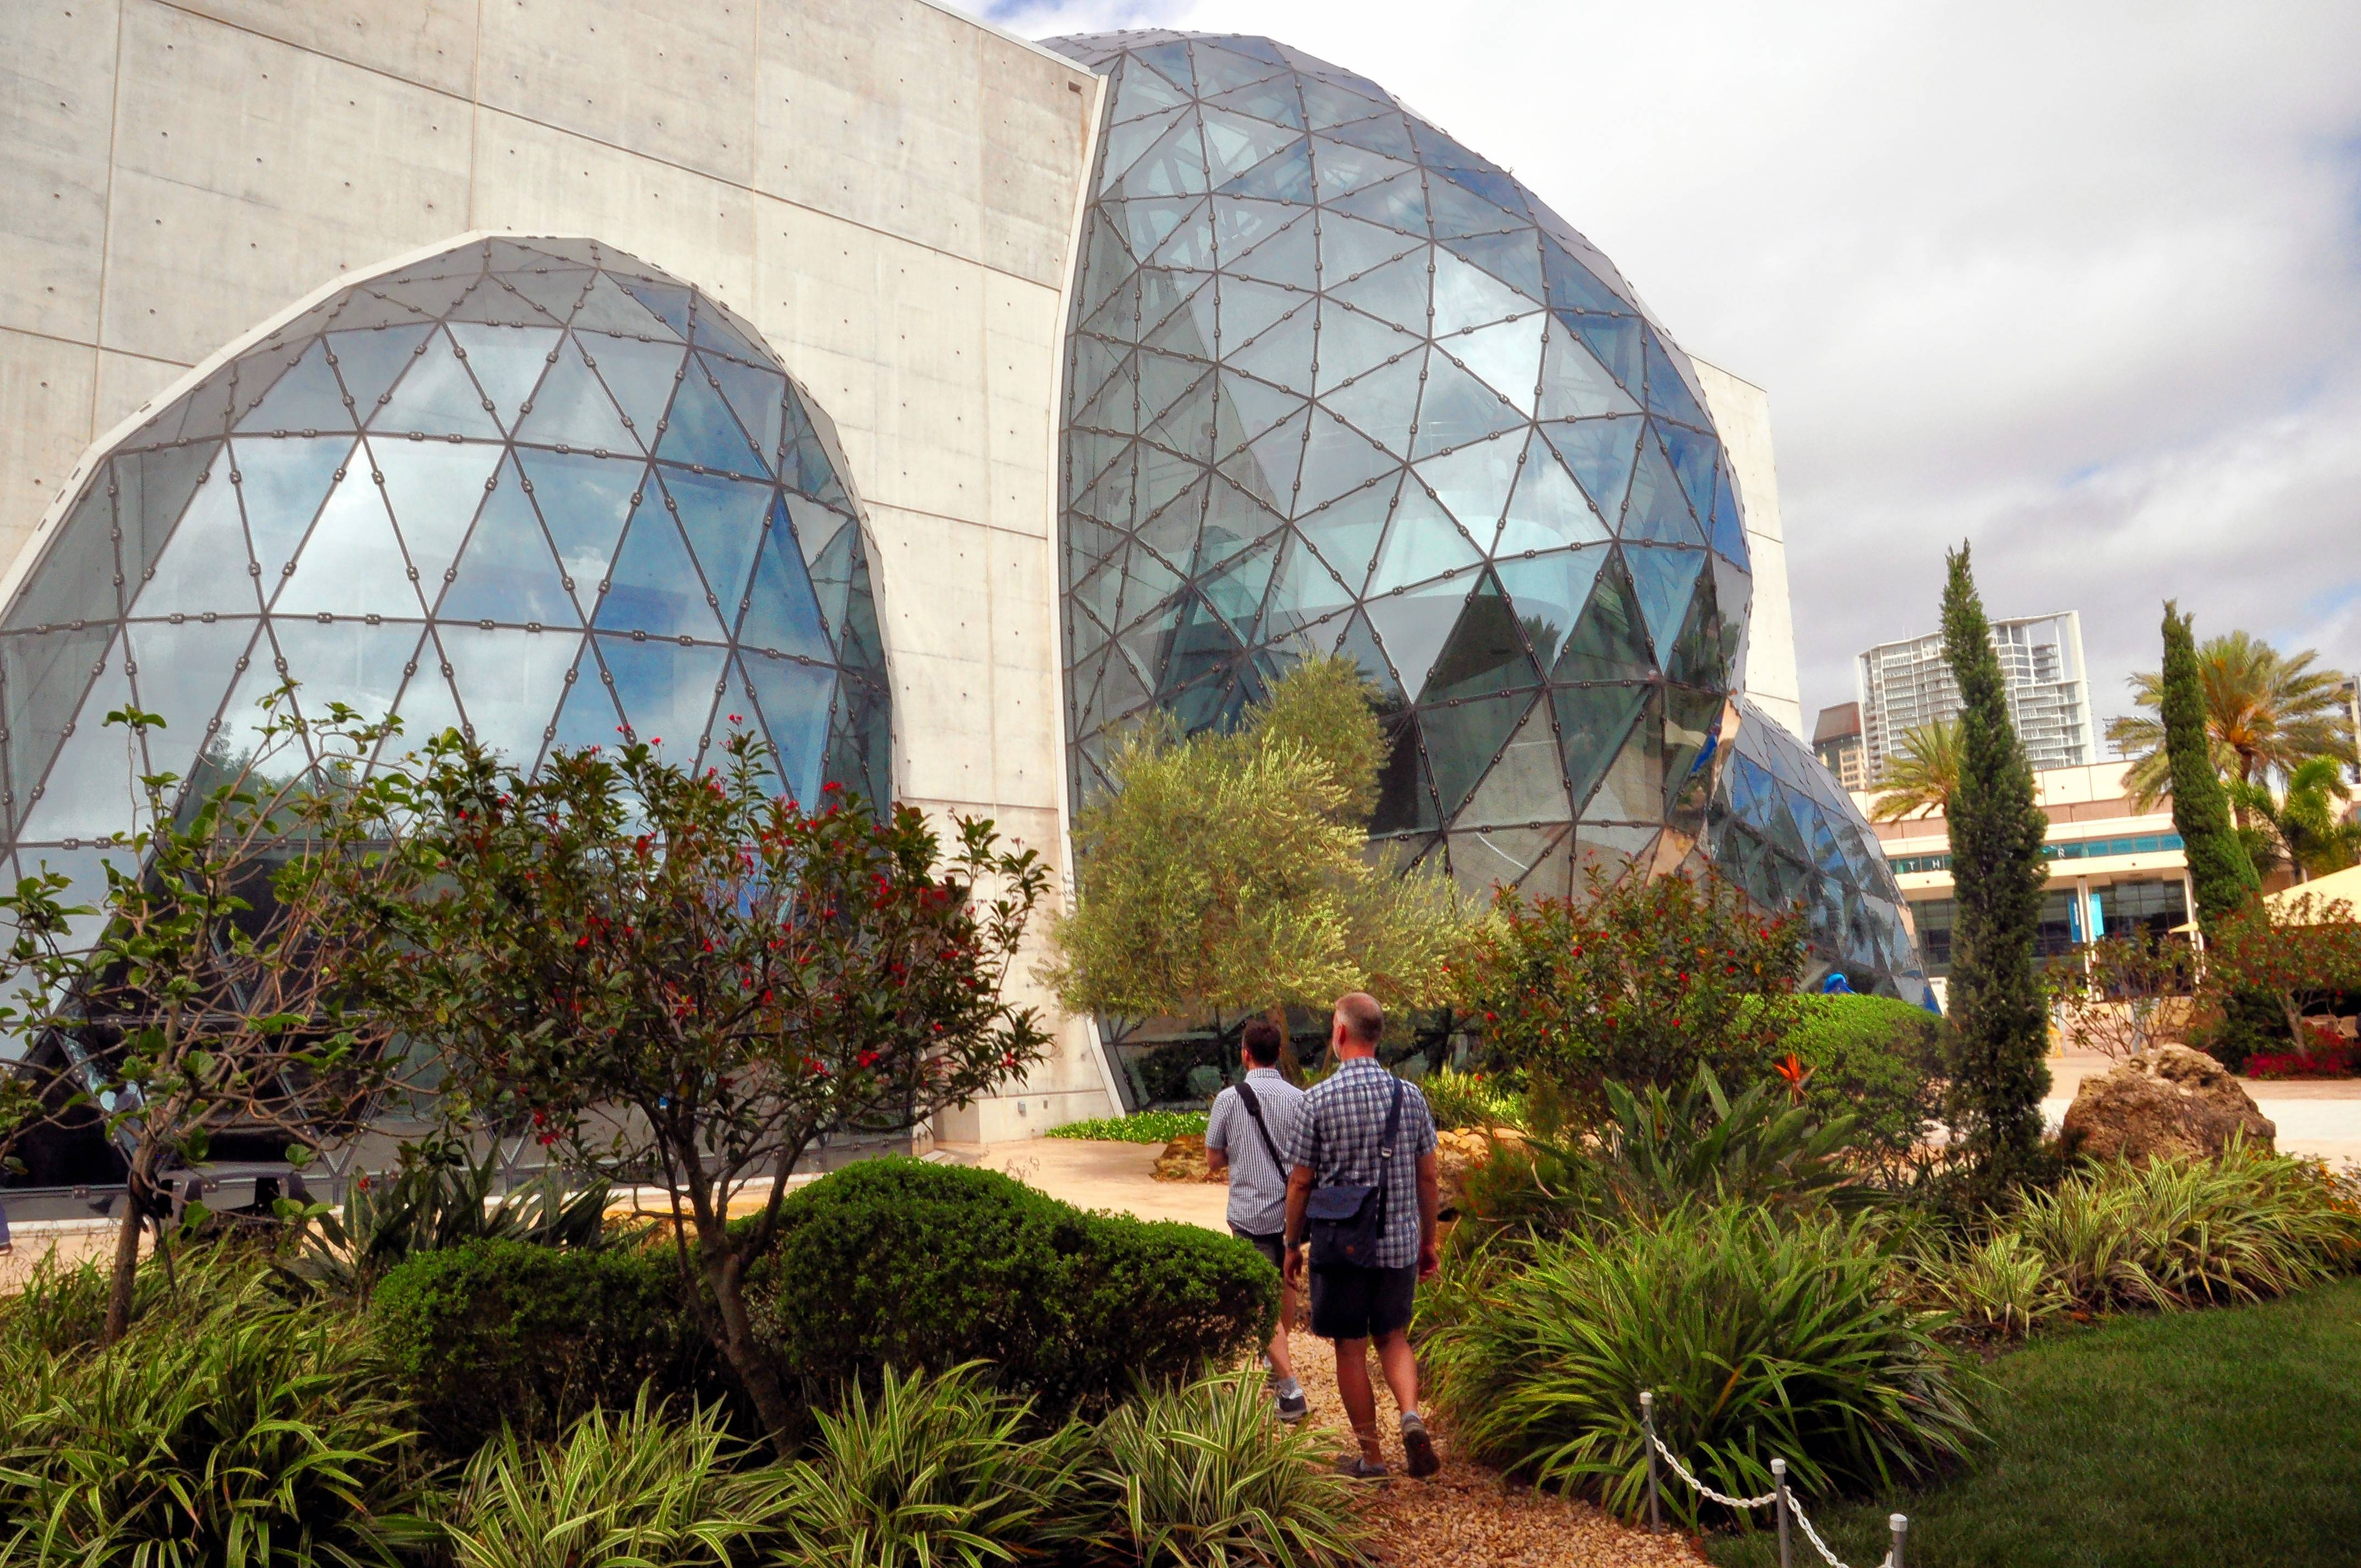 The building housing the Dali Museum in St. Petersburg, Fla., has avant-garde architecture making it a work of art itself.